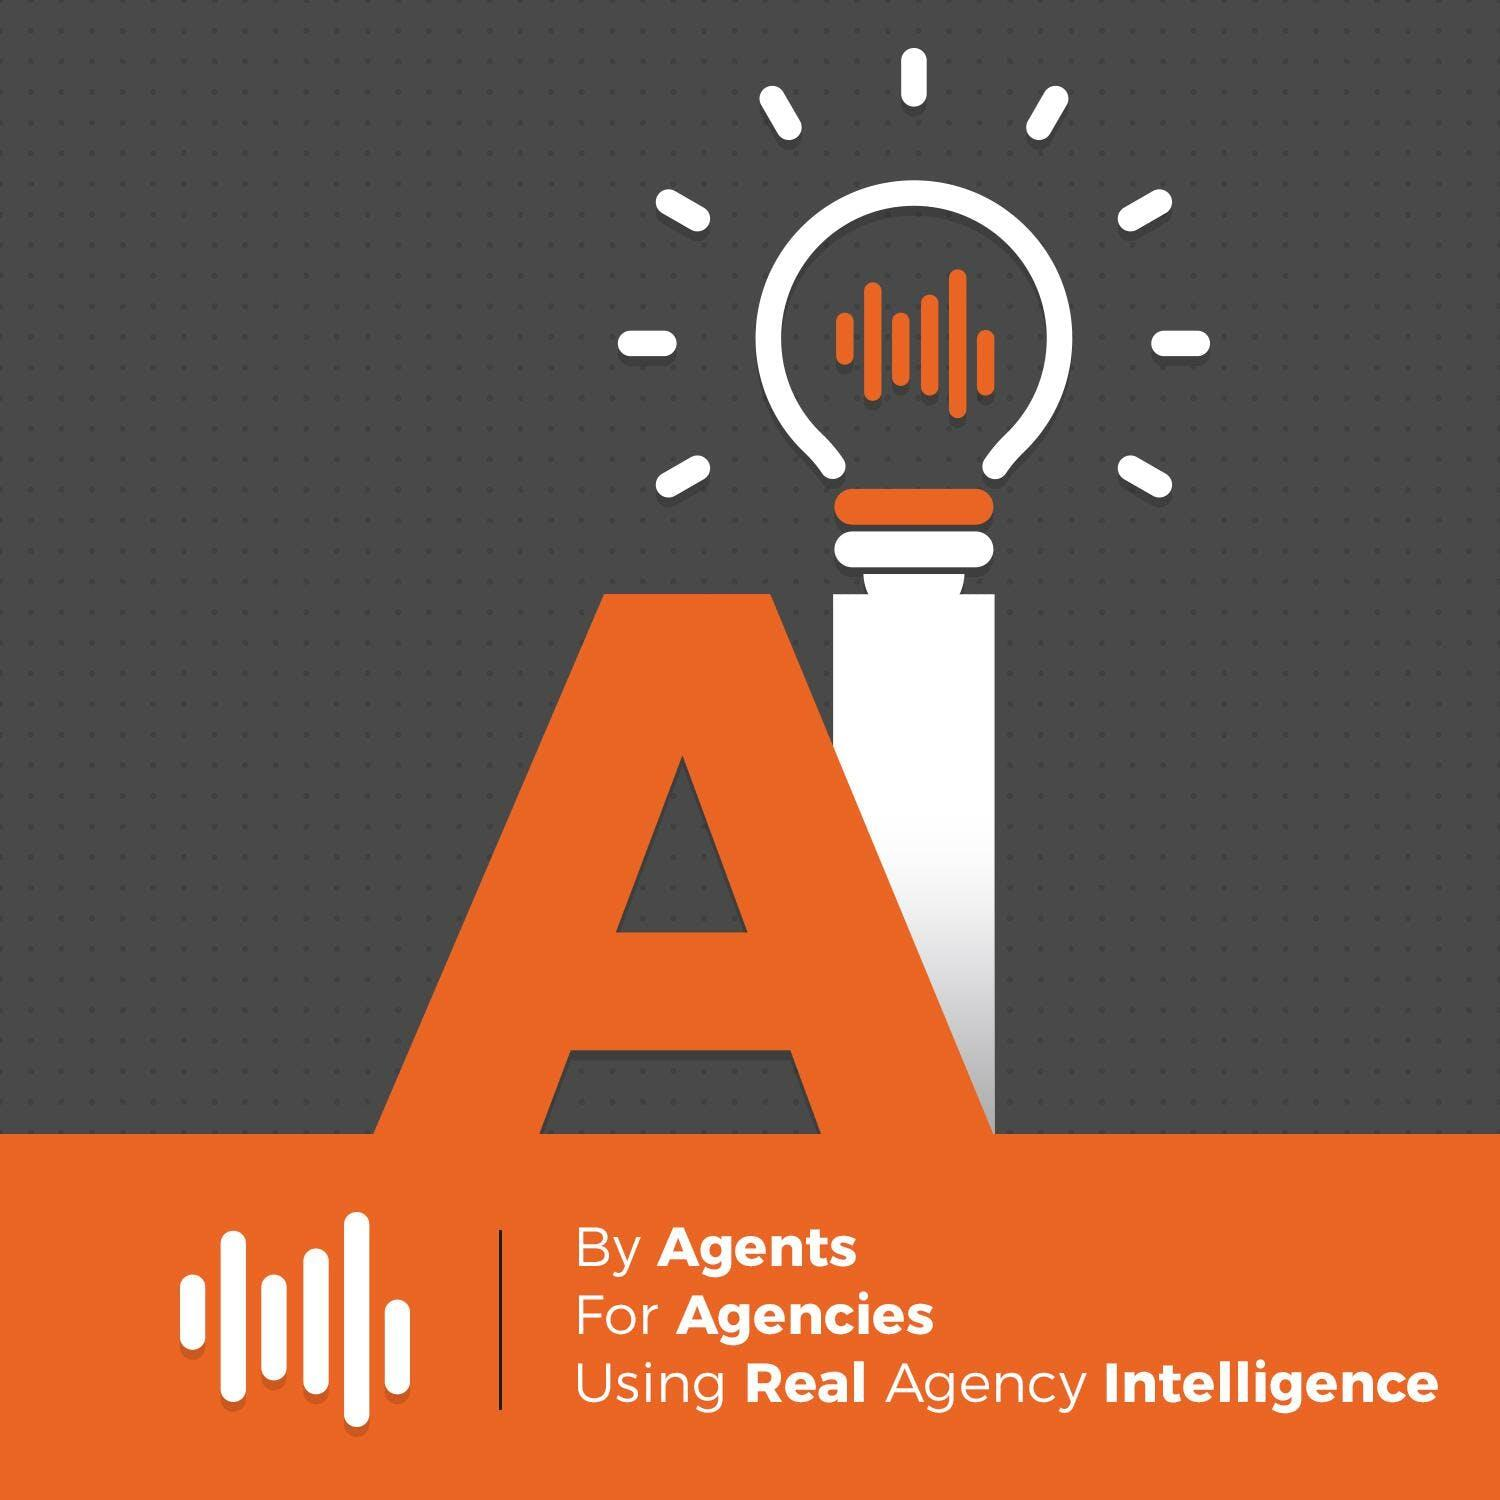 Agency Intelligence